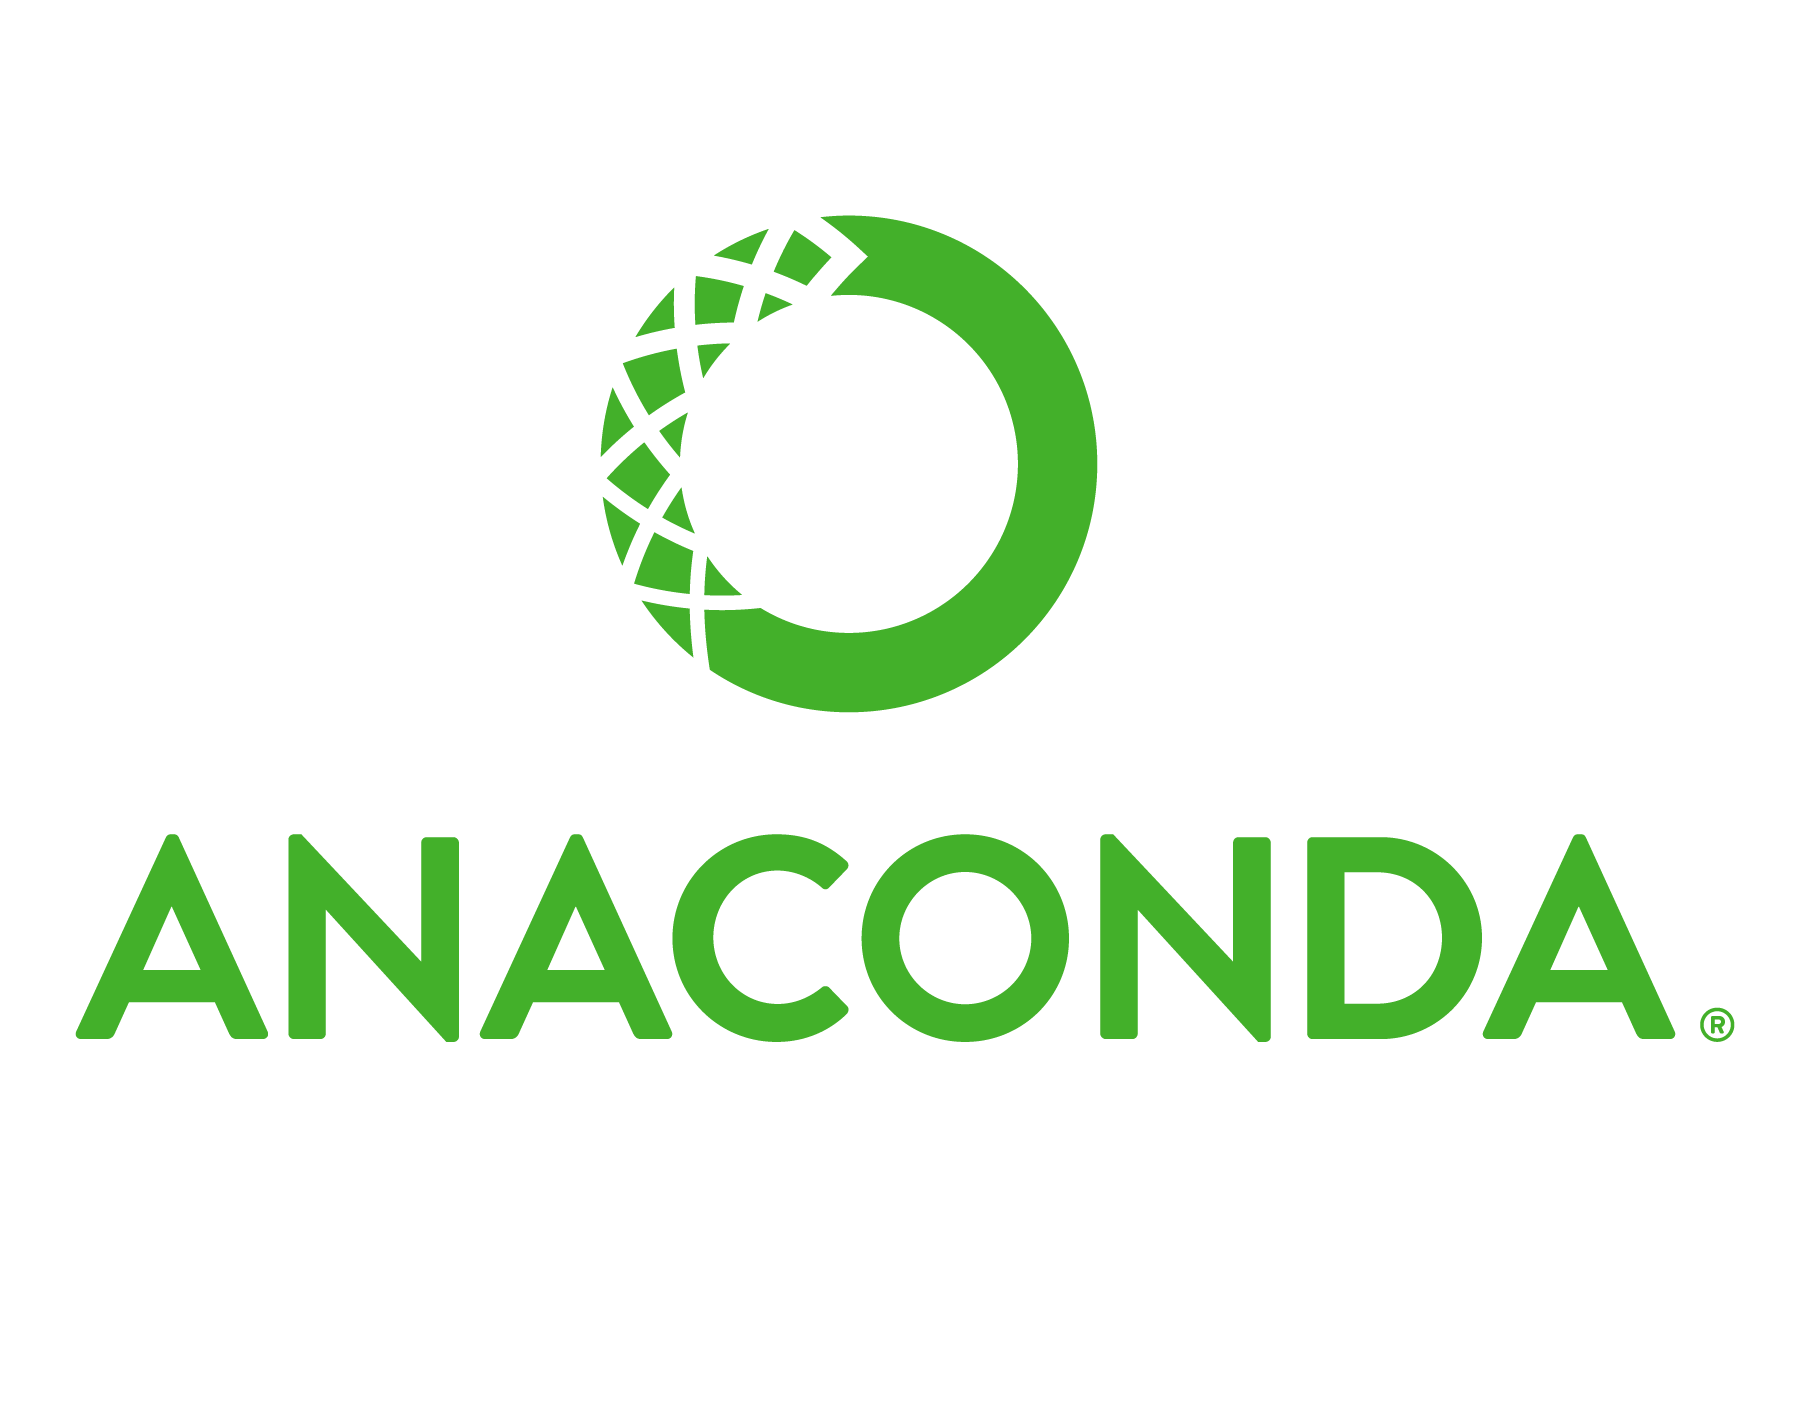 Anaconda, Inc.